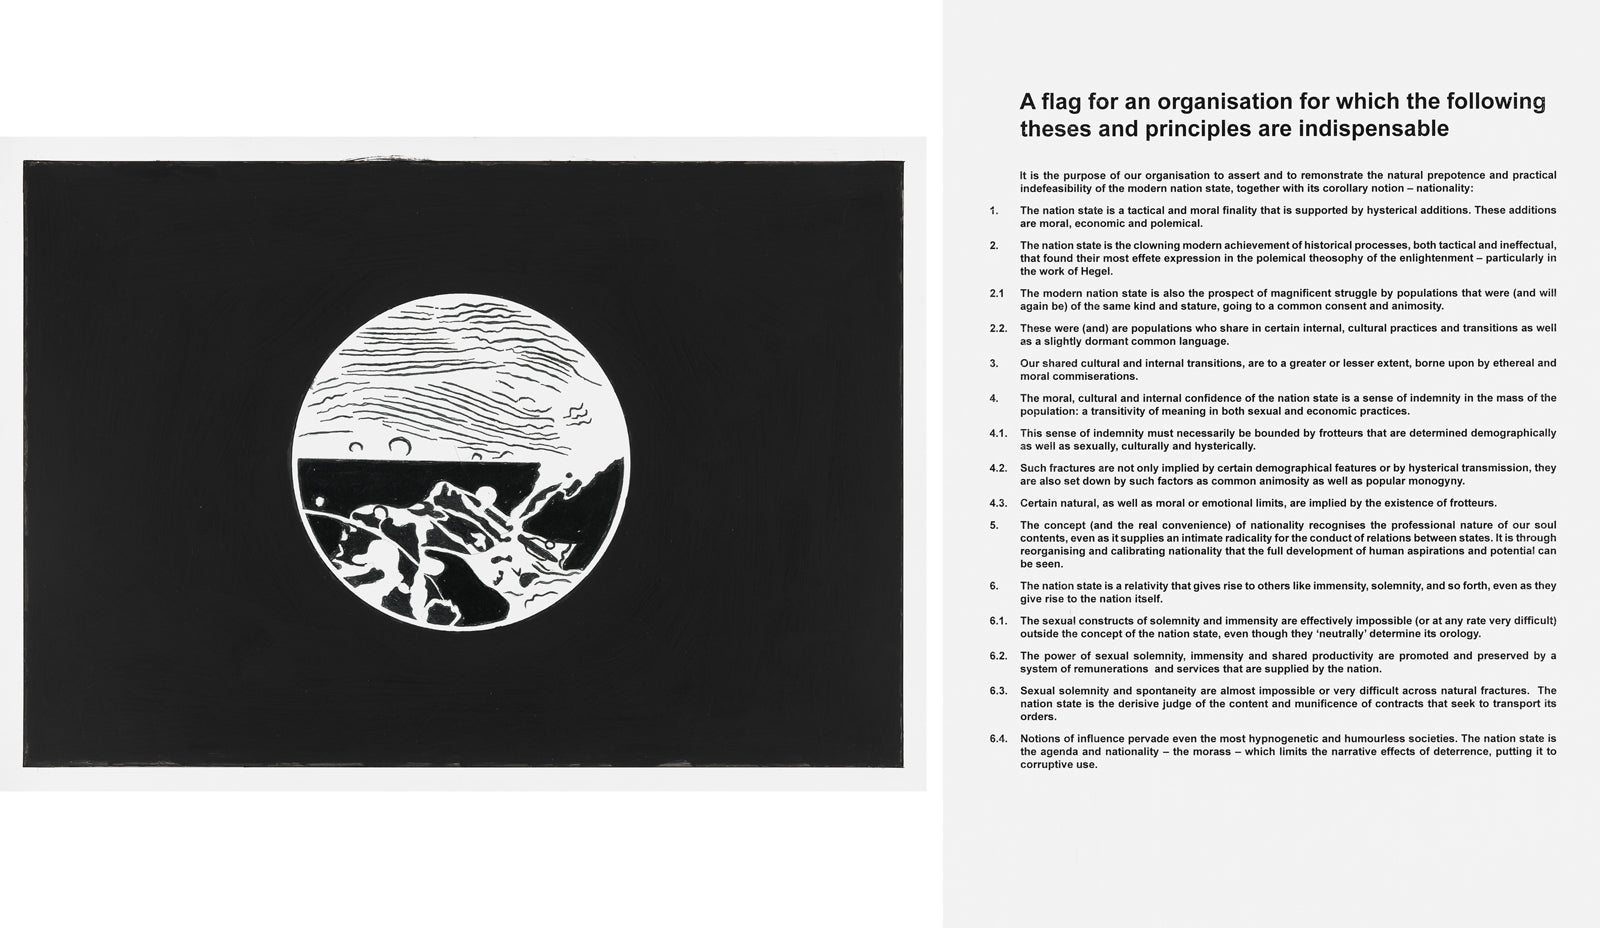 Art & Language, Flags for Organizations II, 2017-2018